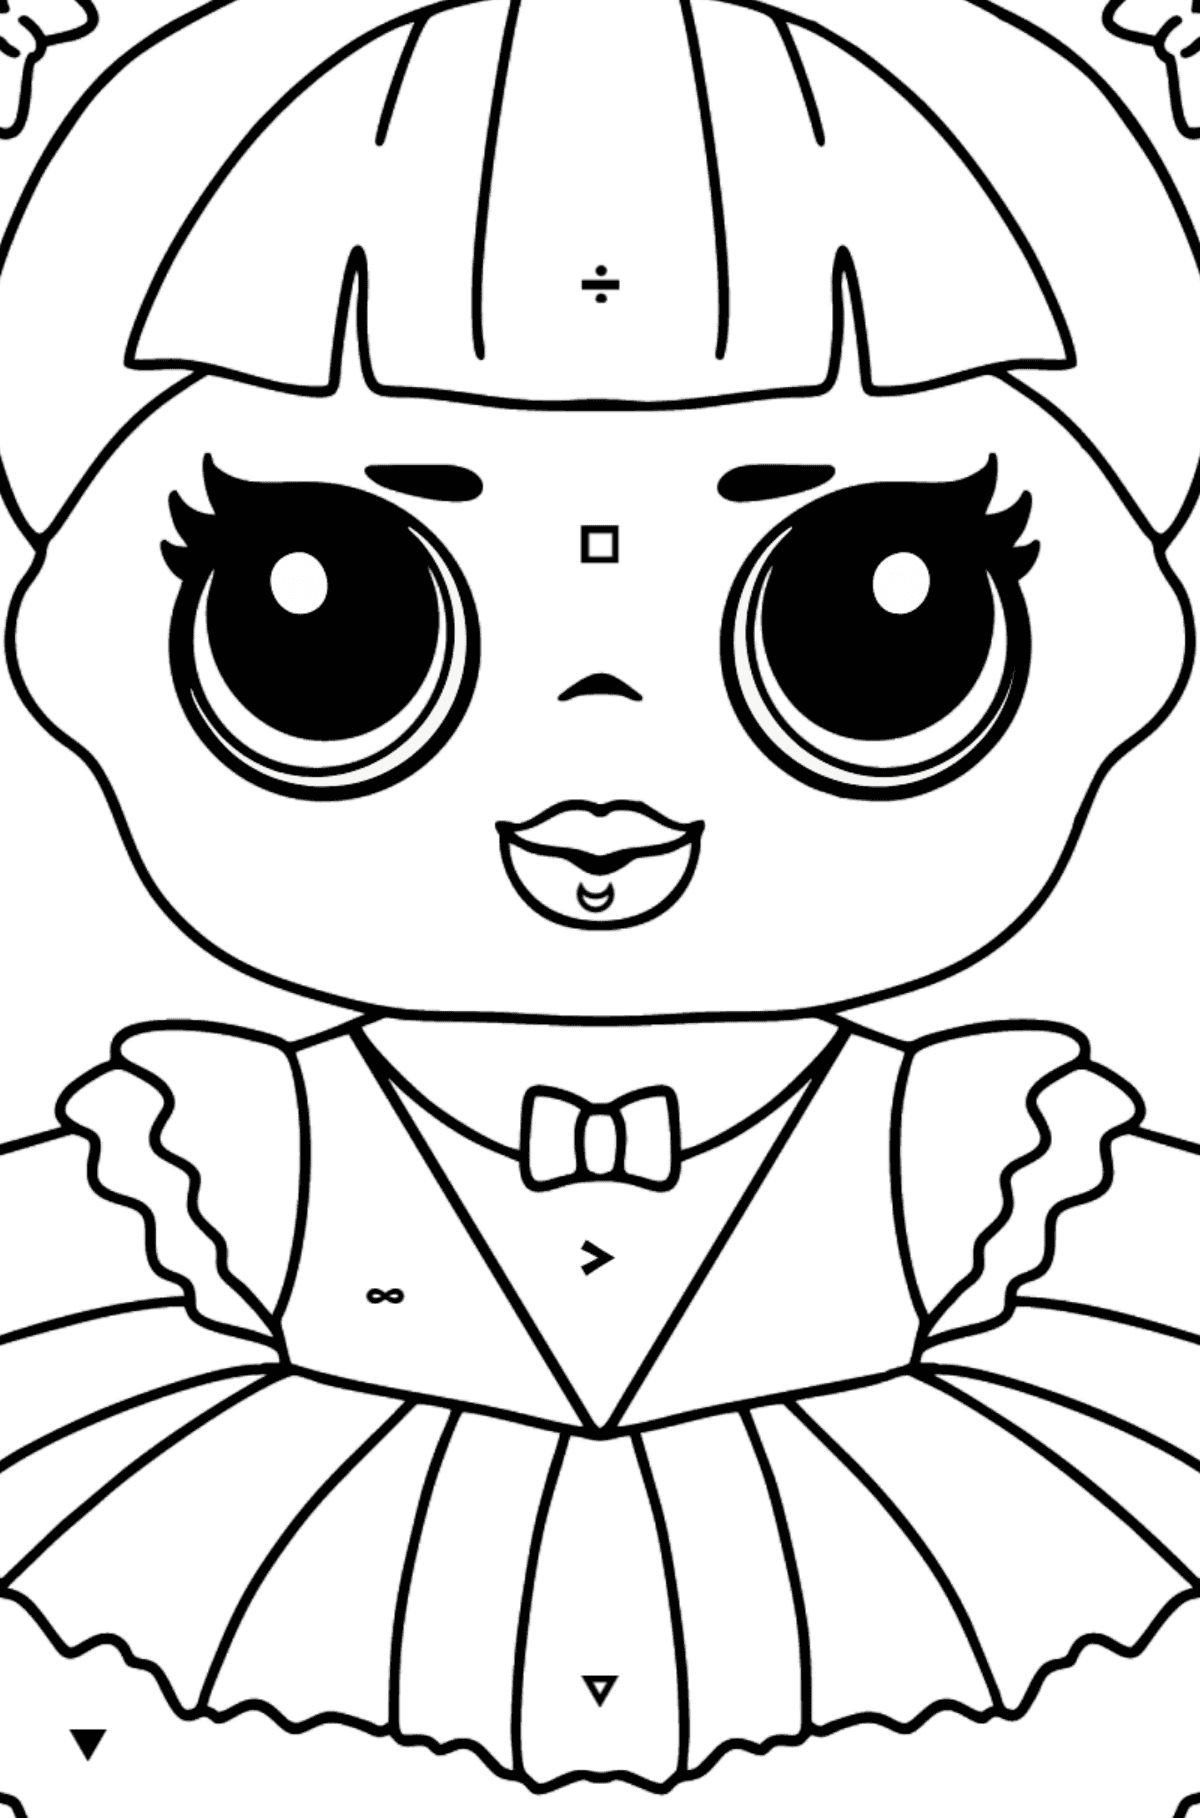 L.O.L. Surprise Doll Center Stage - Coloring by Symbols for Kids